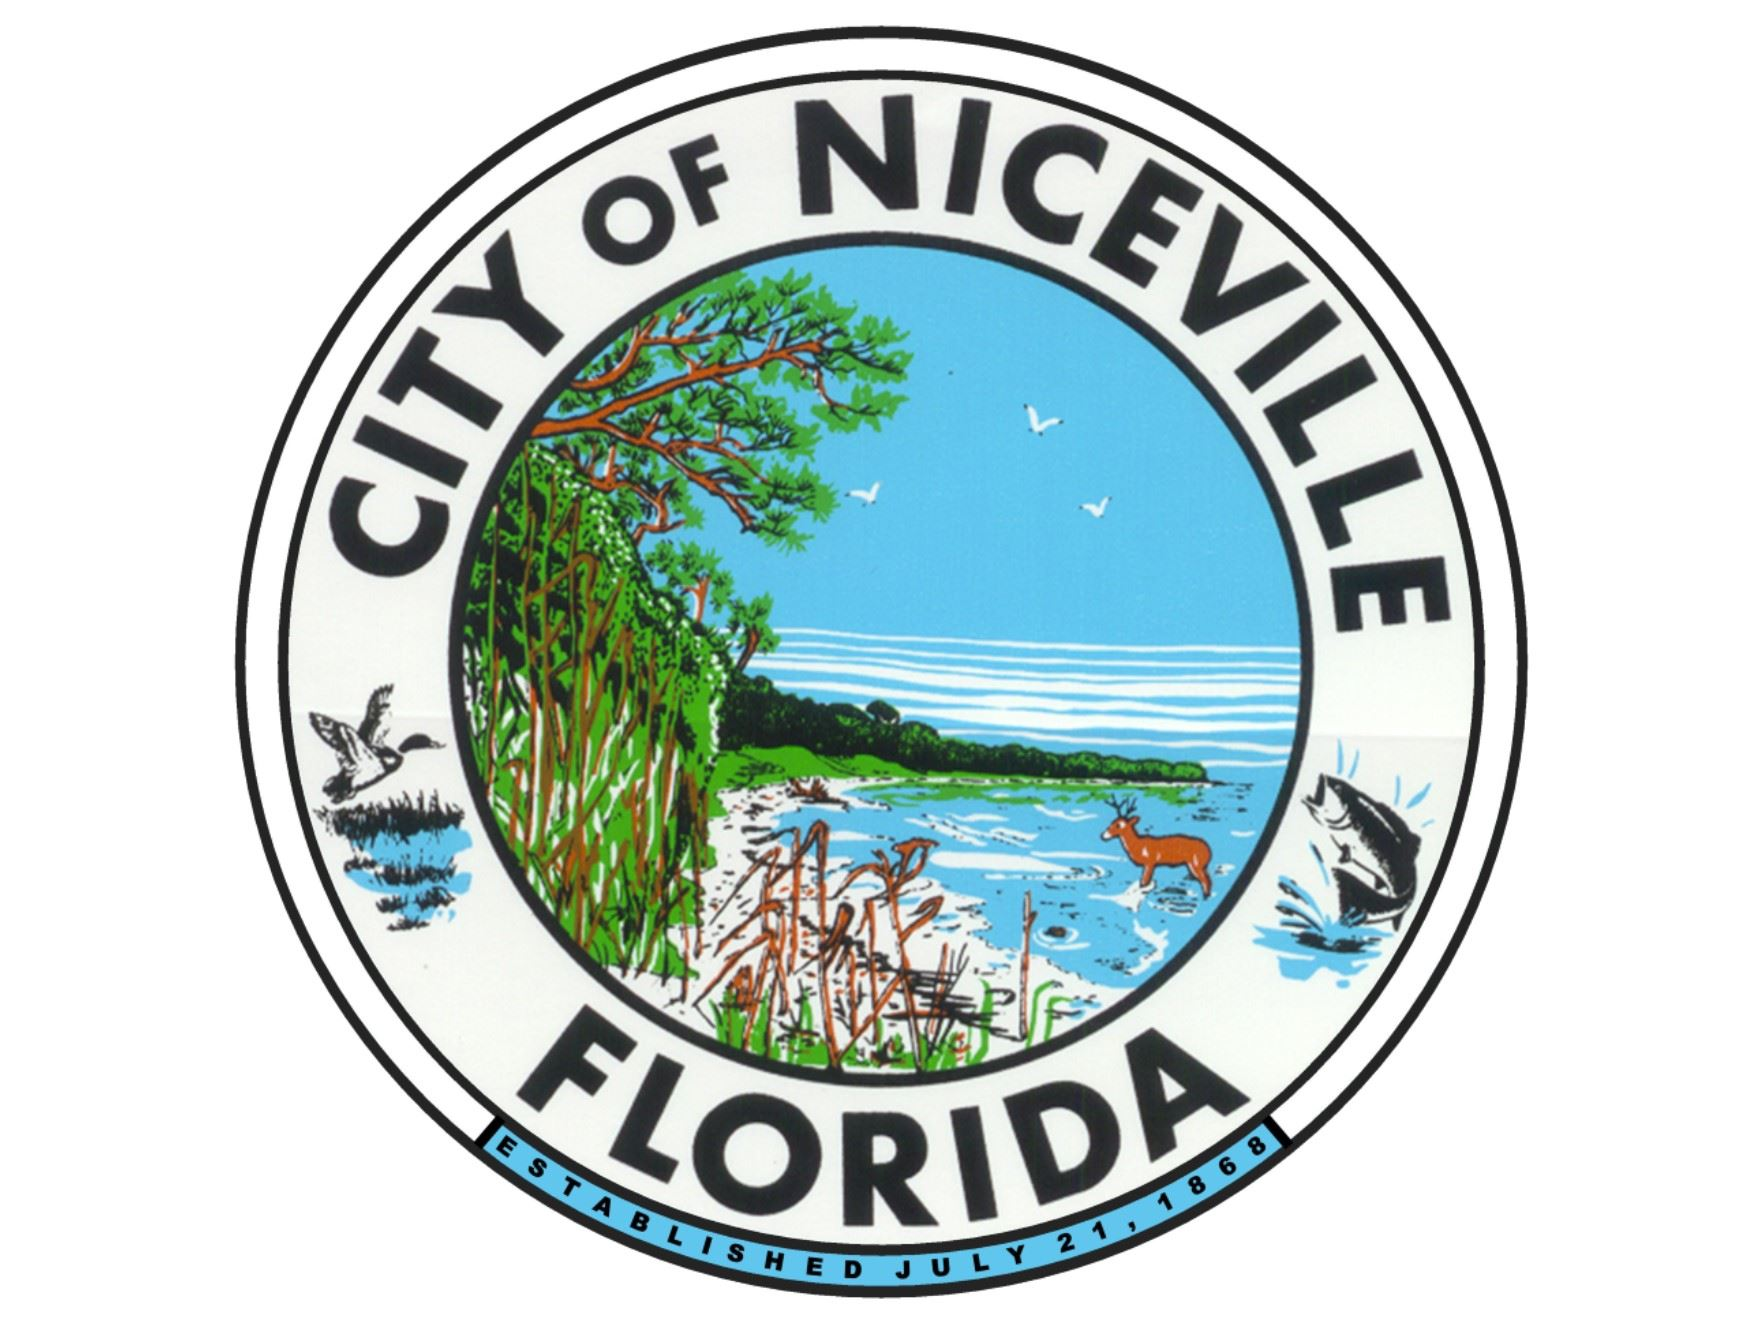 City of Niceville Seal